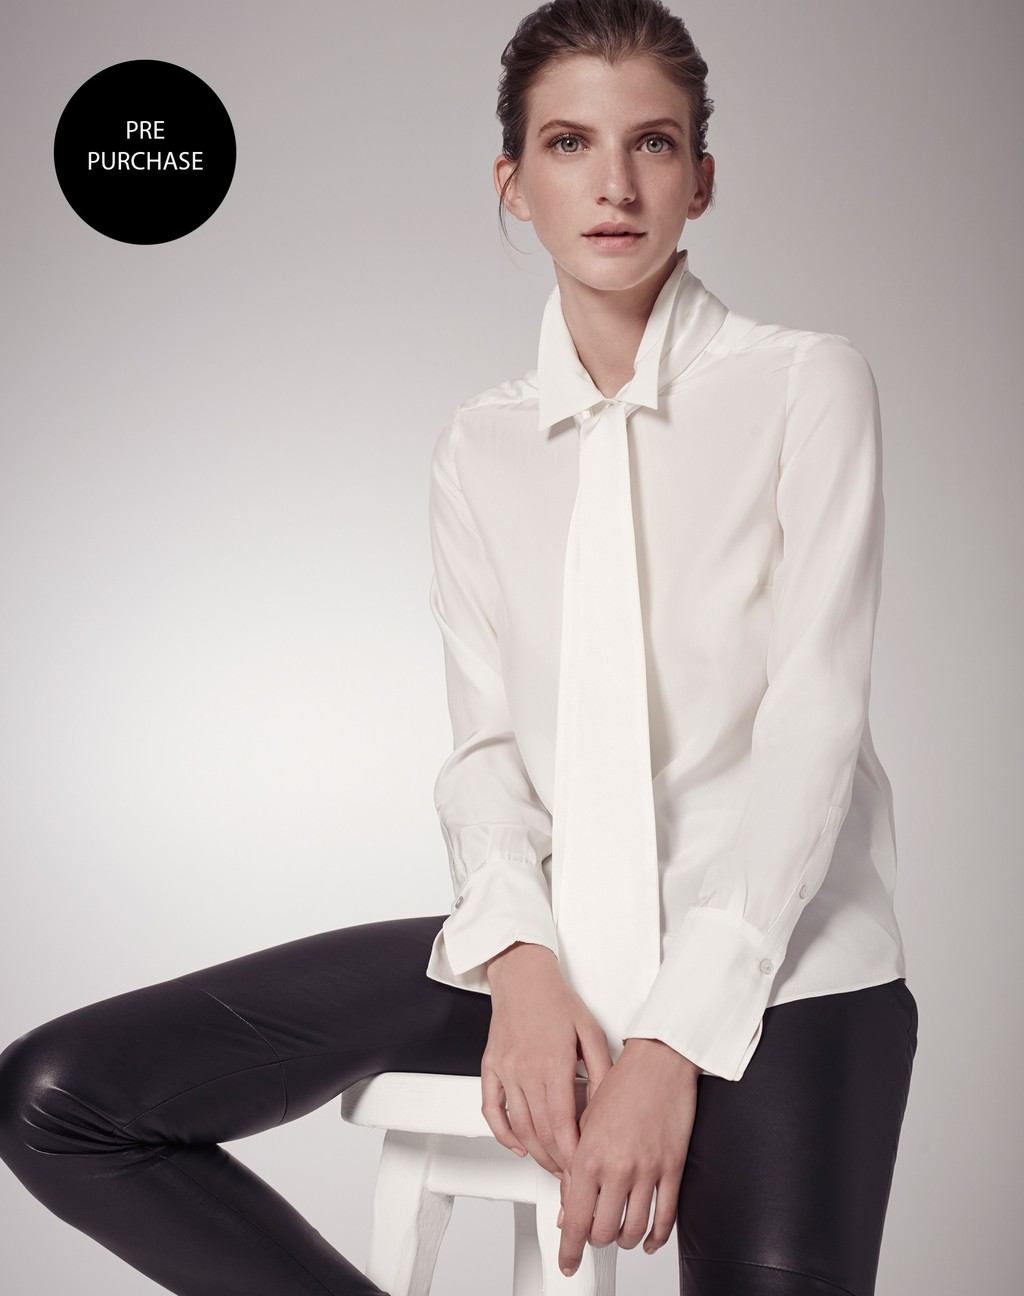 Silk Shirt + Tie Soft White - neckline: shirt collar/peter pan/zip with opening; pattern: plain; style: t-shirt; predominant colour: white; occasions: work; length: standard; fibres: silk - mix; fit: body skimming; sleeve length: long sleeve; sleeve style: standard; texture group: silky - light; pattern type: fabric; season: s/s 2016